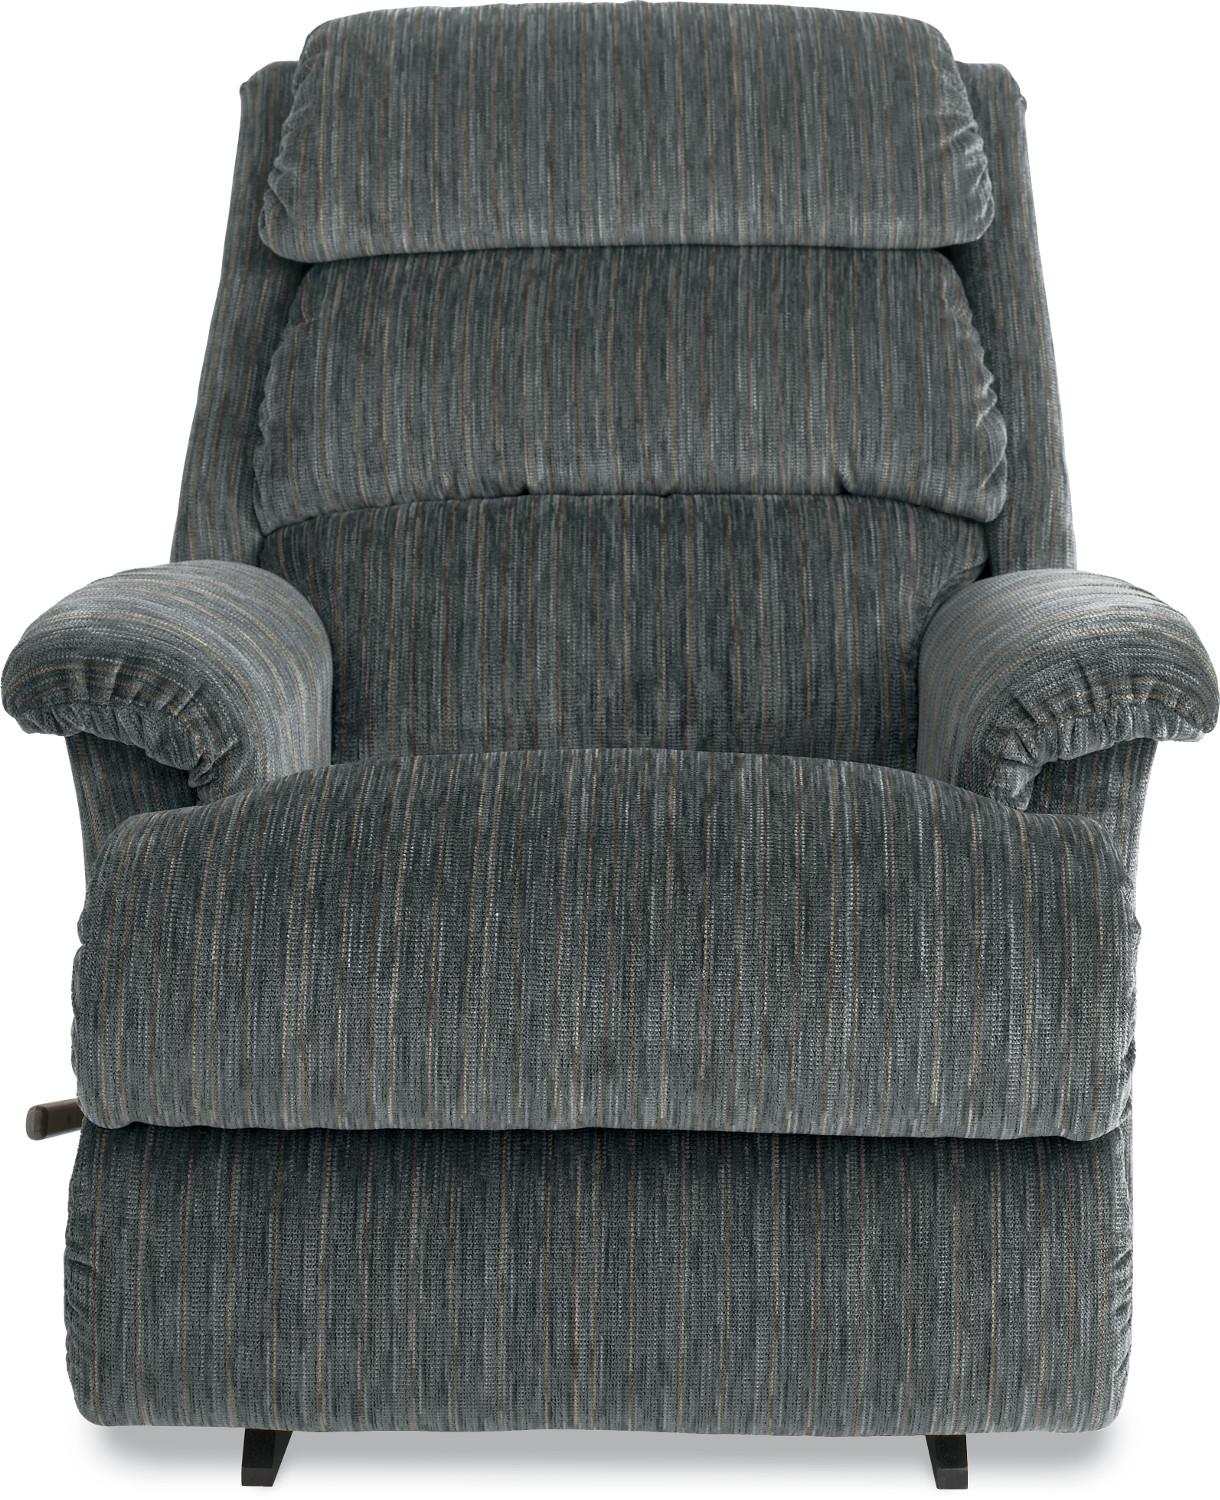 La-Z-Boy Astor Reclina-Rocker - Item Number: 010519C993484